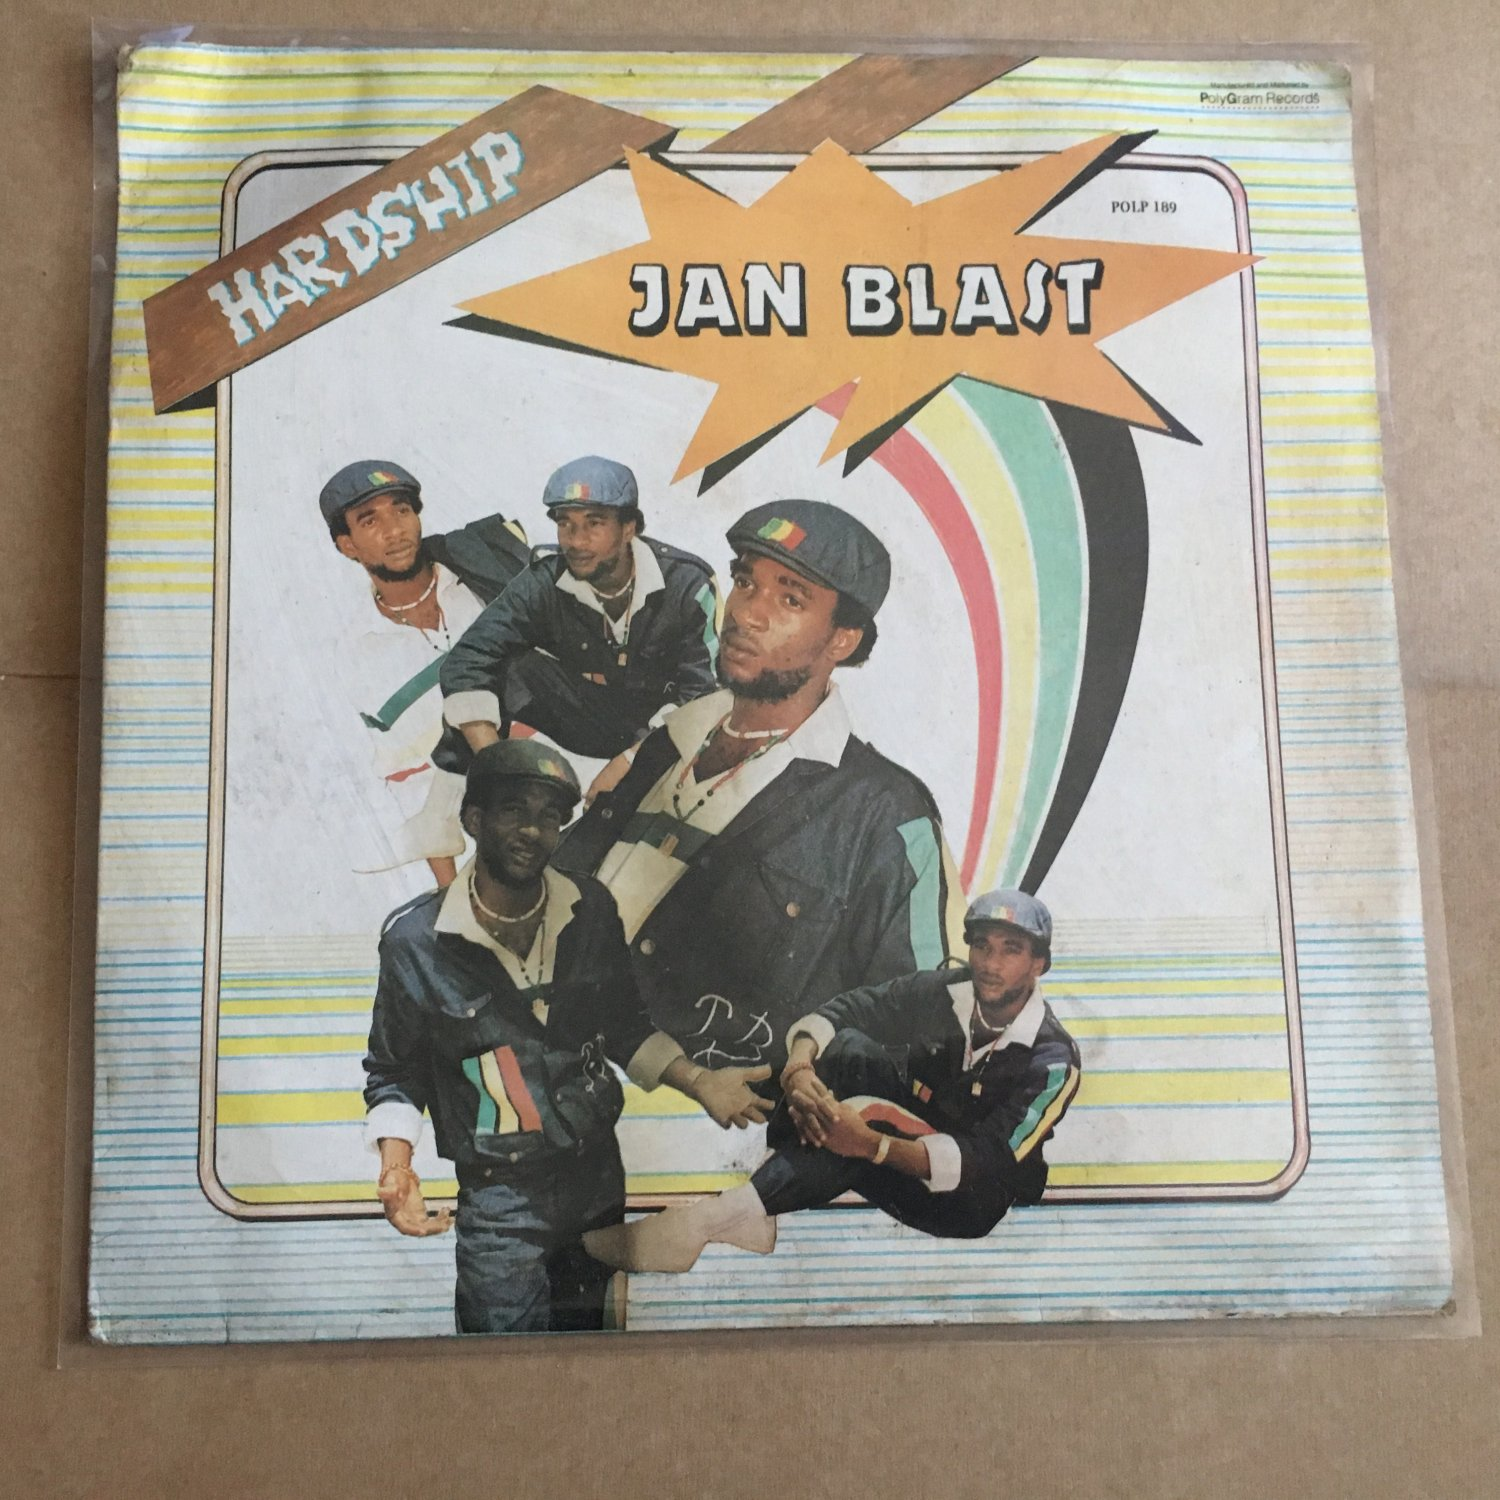 JAN BLAST LP hardship NIGERIA AFRO REGGAE mp3 LISTEN